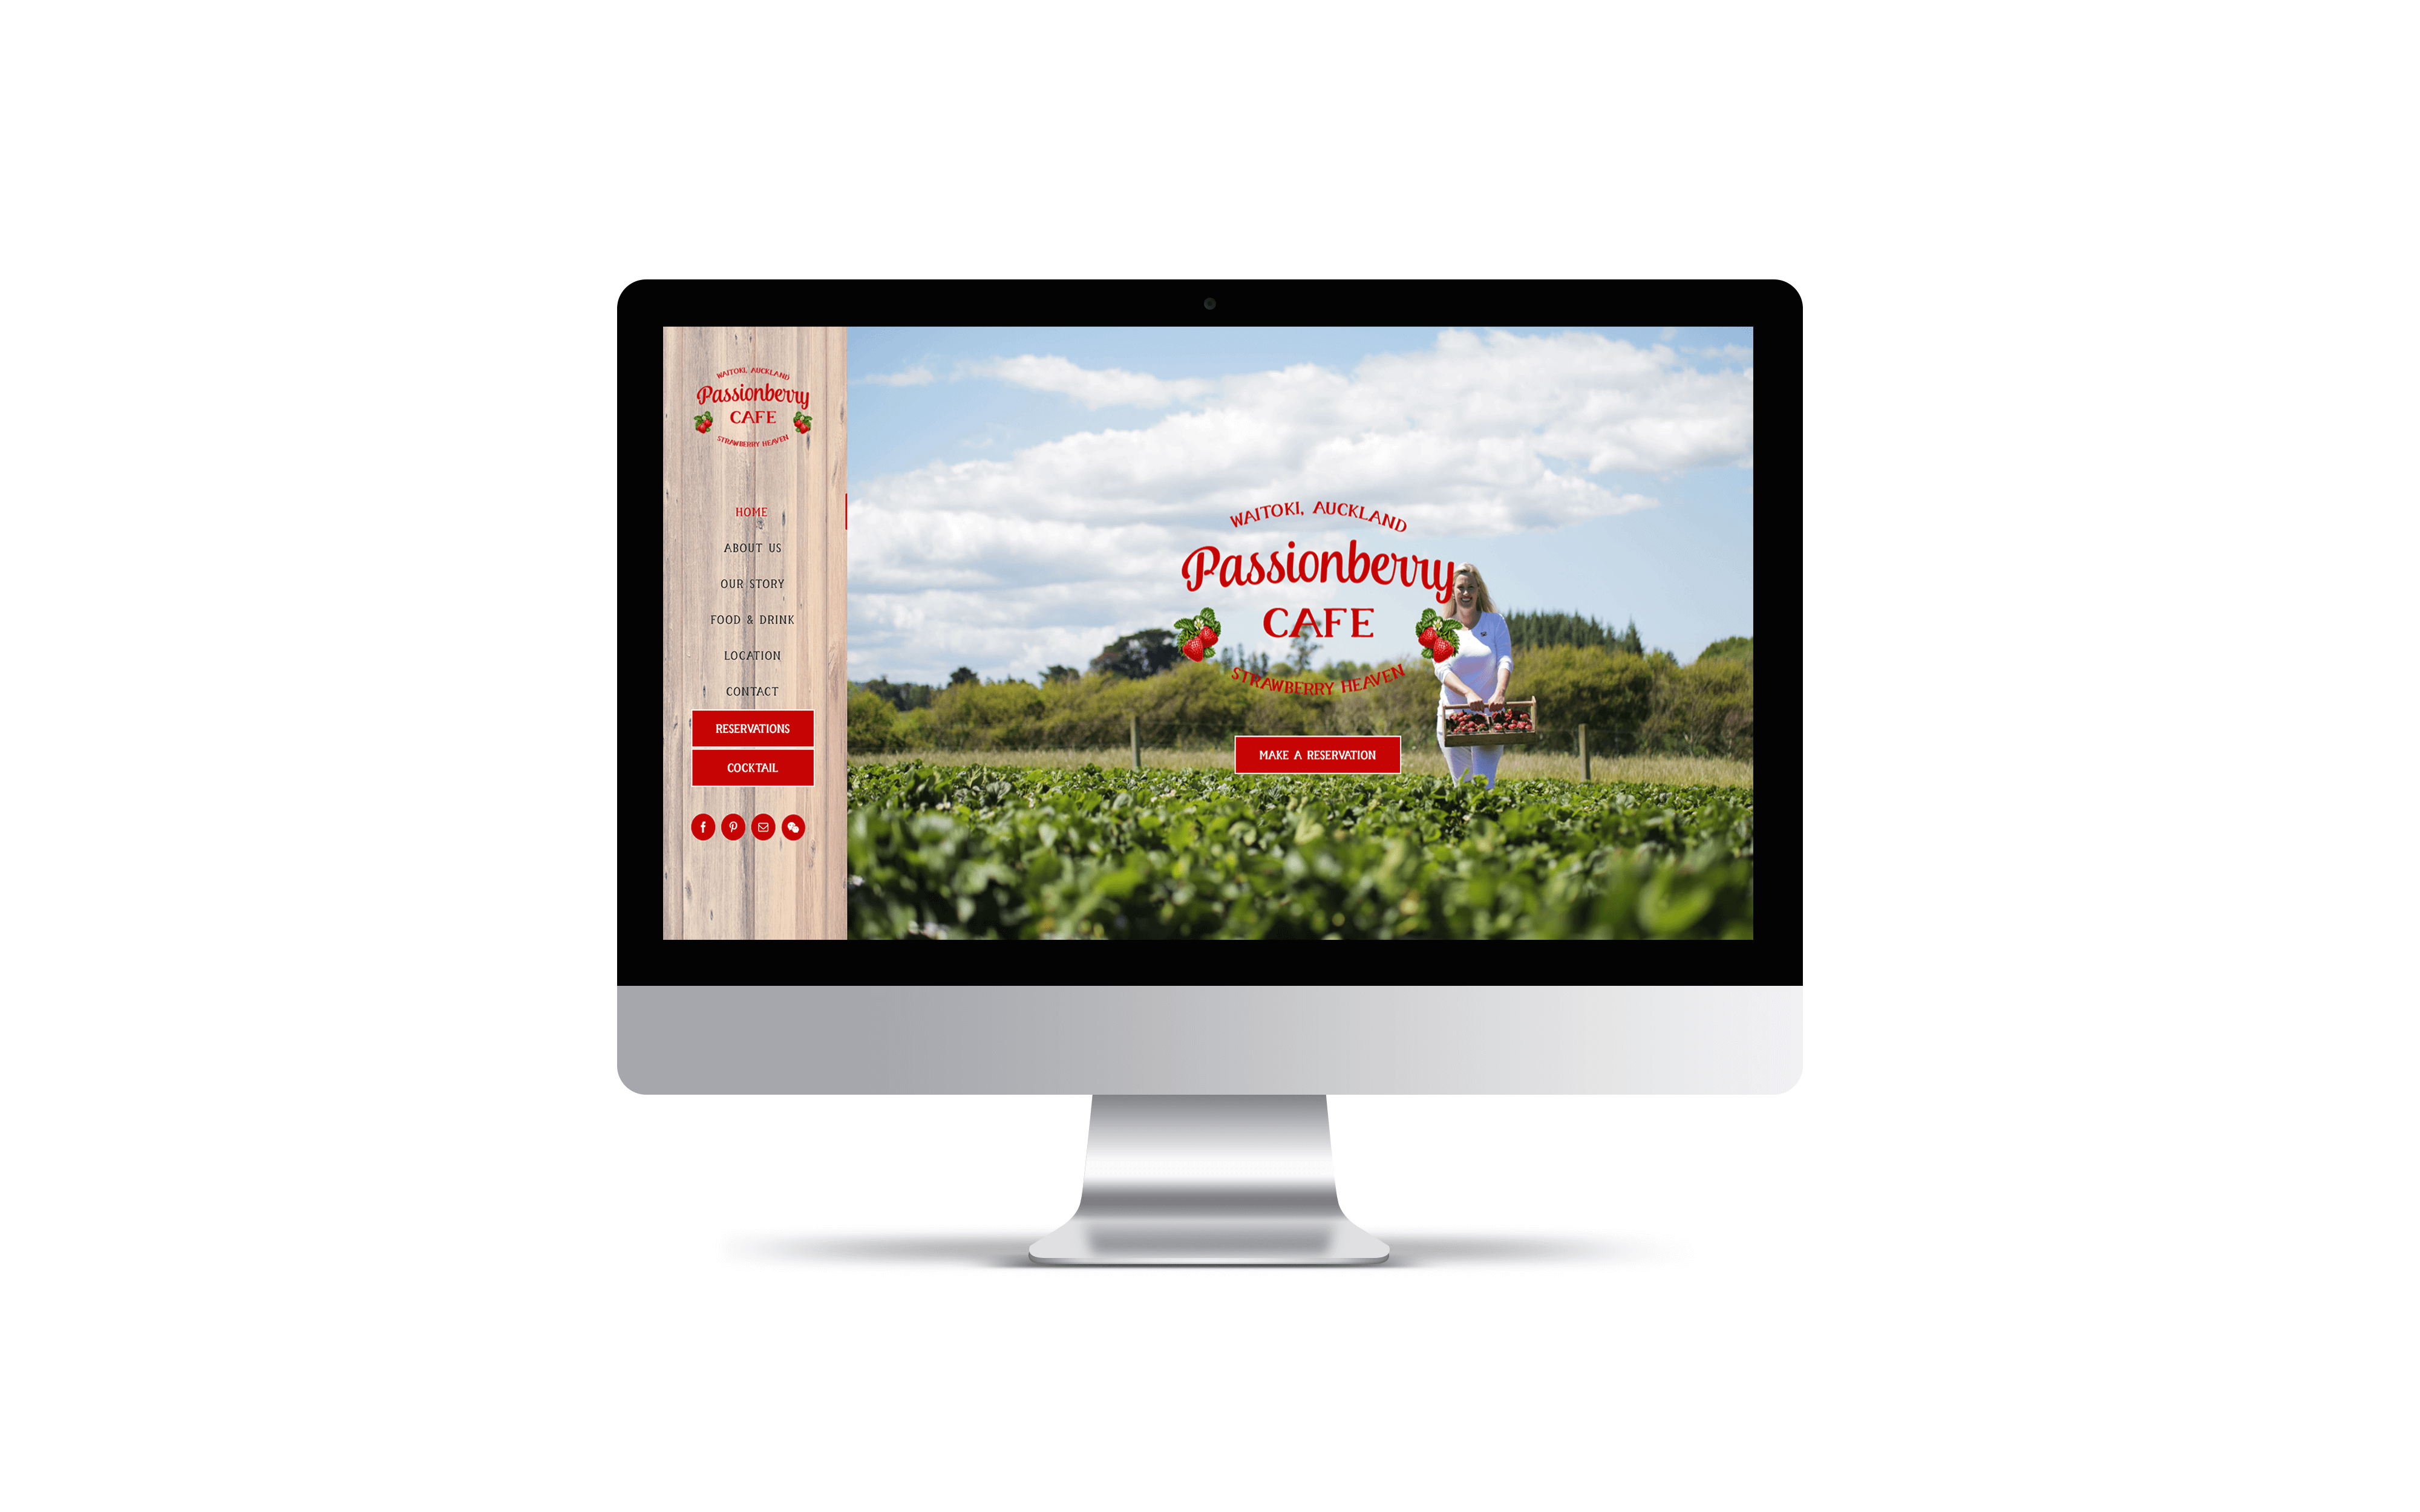 Website: Passionberry Cafe